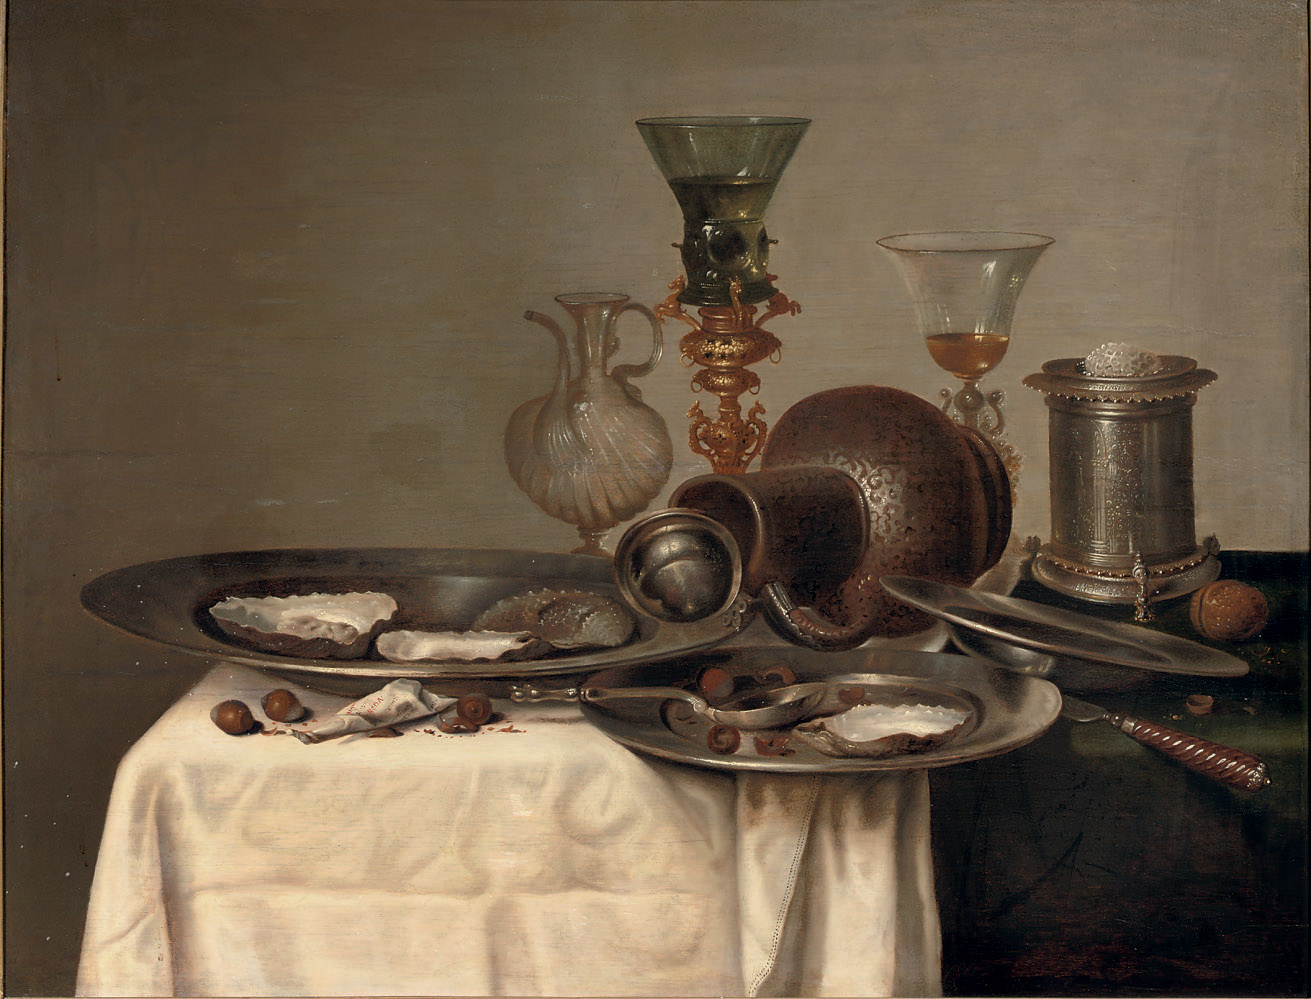 Oysters and hazelnuts on pewter dishes, a 'Roemer' in a 'Bekerschroef', a silver salt cellar and an earthenware jug, all on a partly draped table